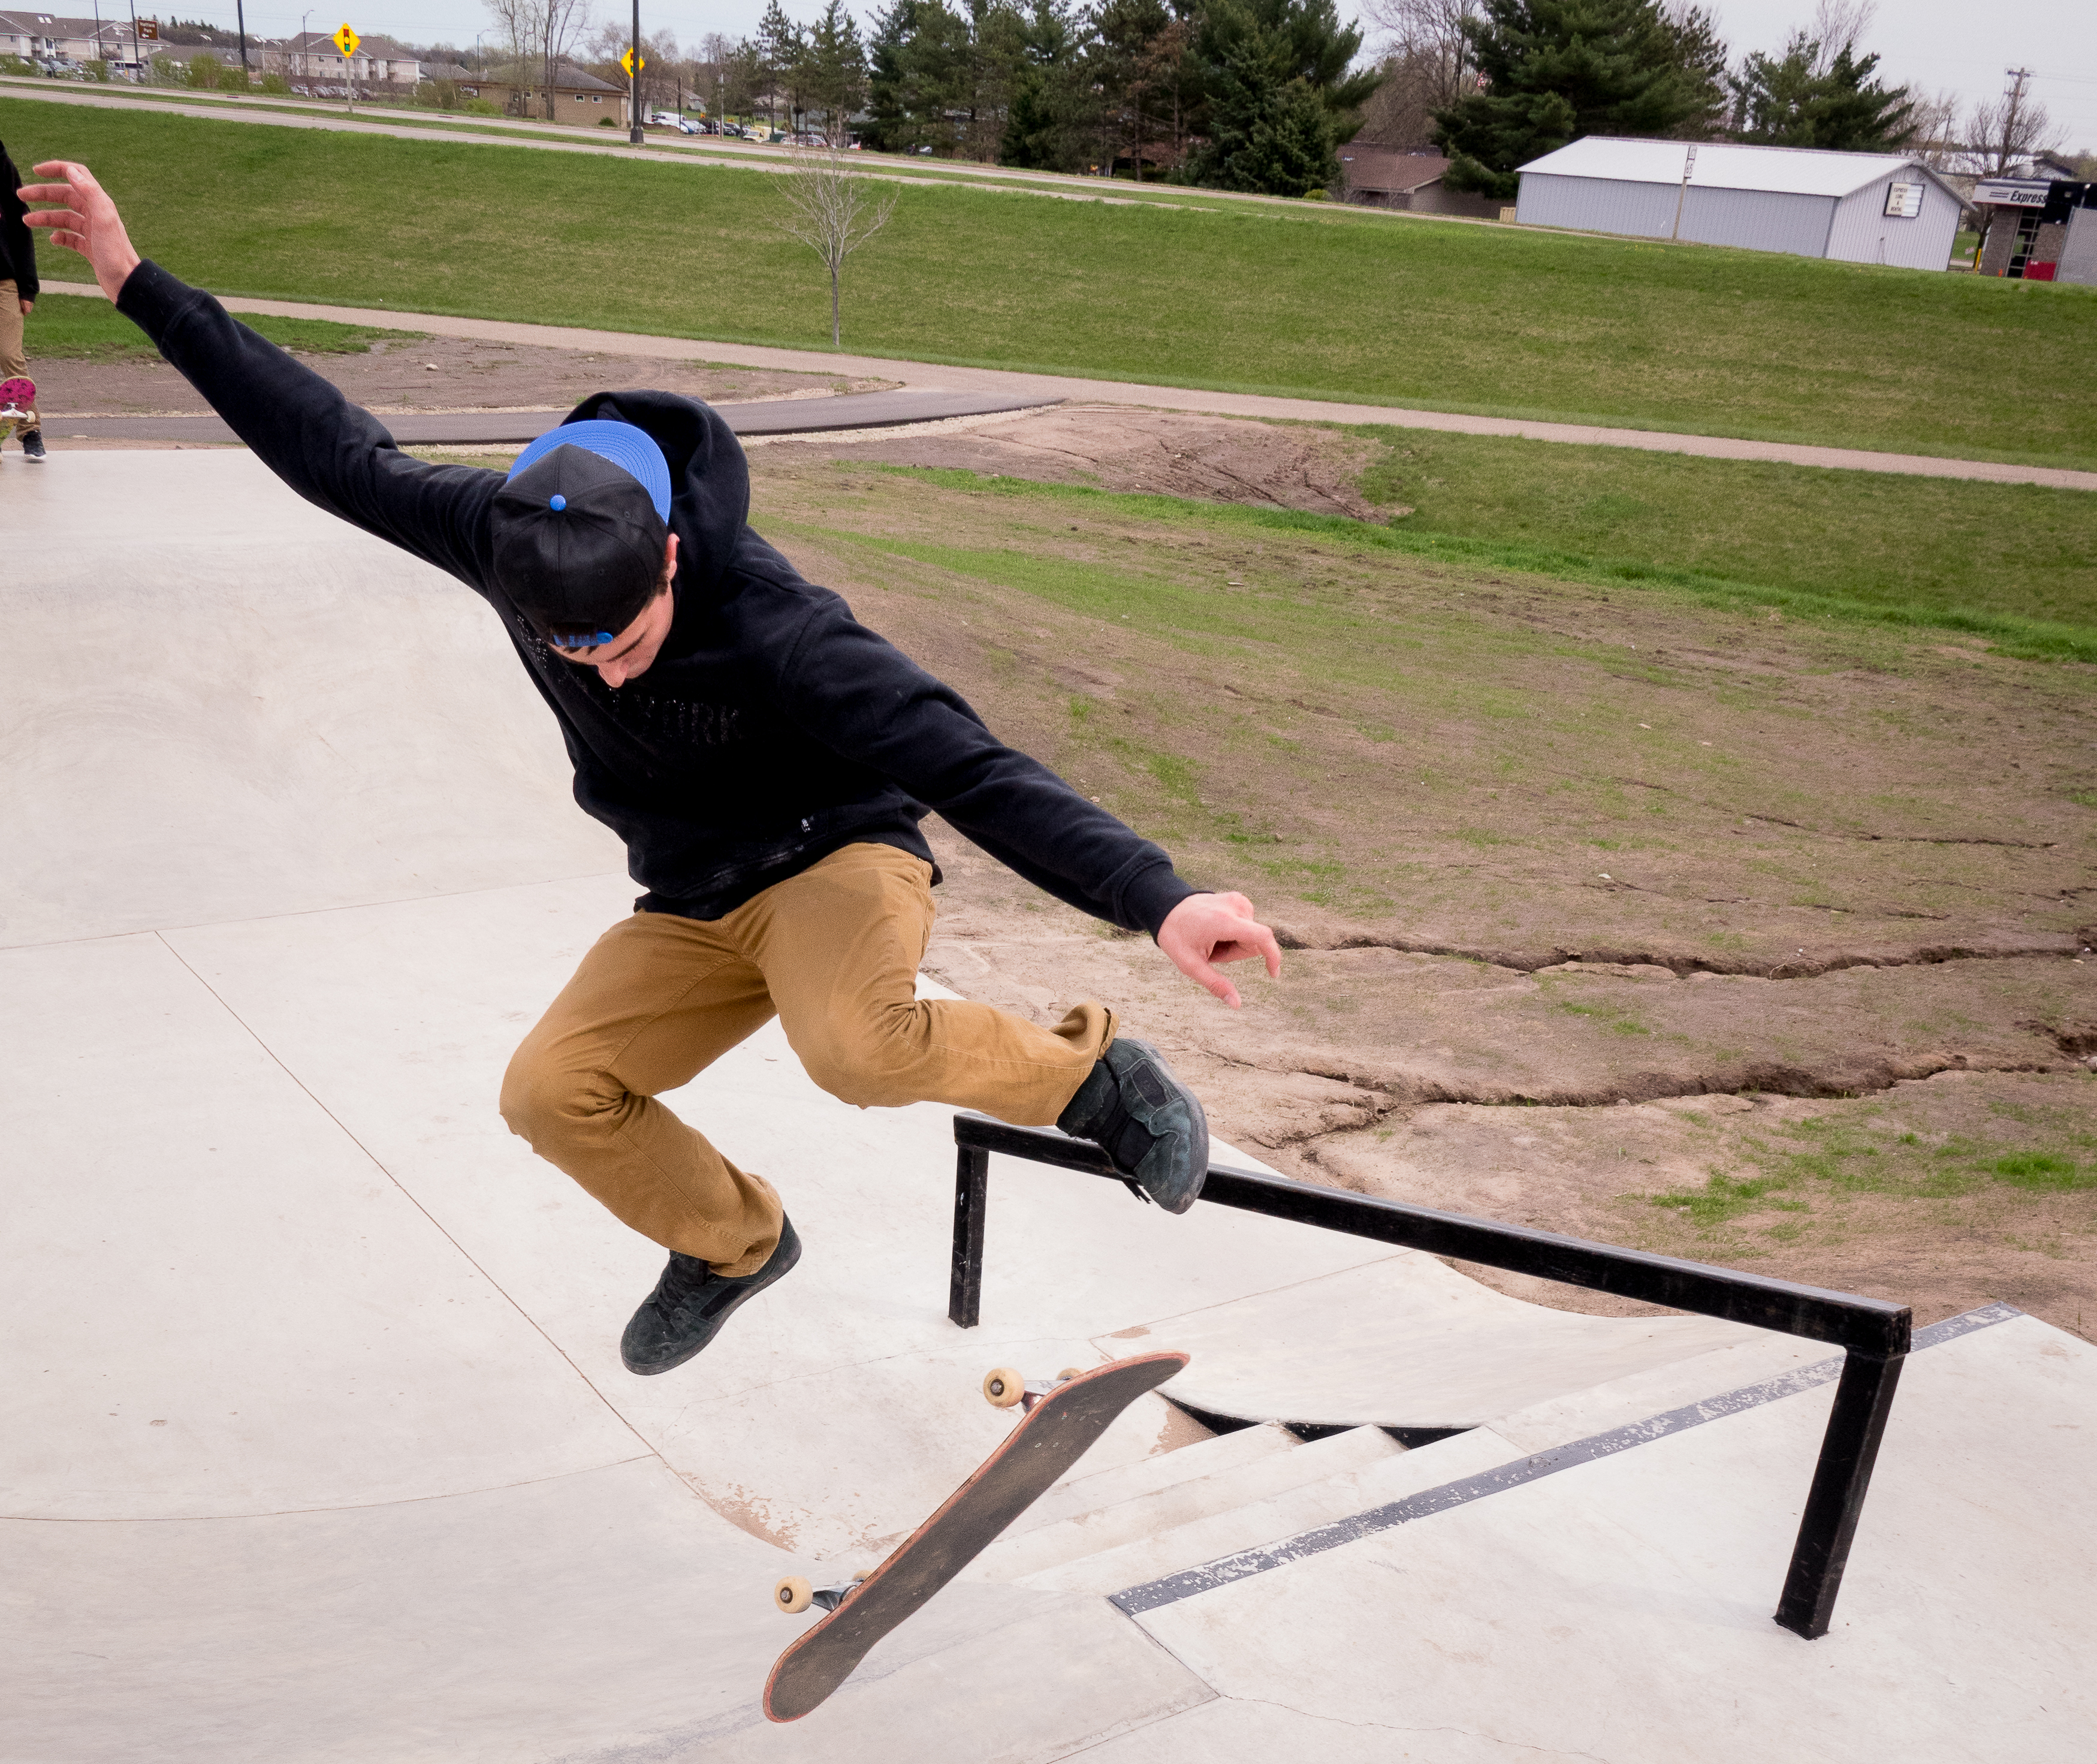 Skateboarder Doing Tricks at New Richmond Skate Park